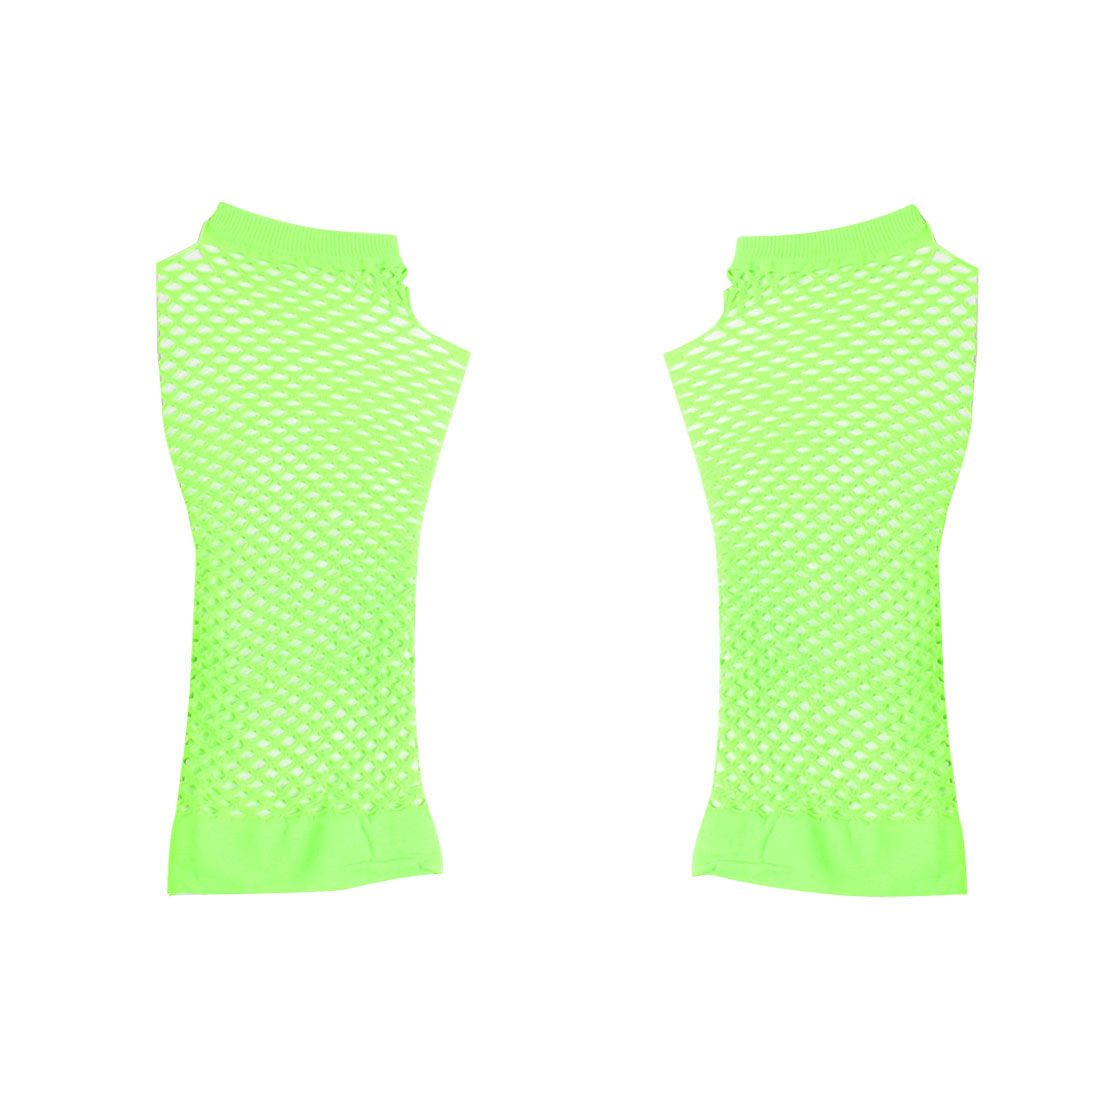 Pair Light Green Stretchy Fishnet Elbow Fingerless Goth Arm Warmers for Lady